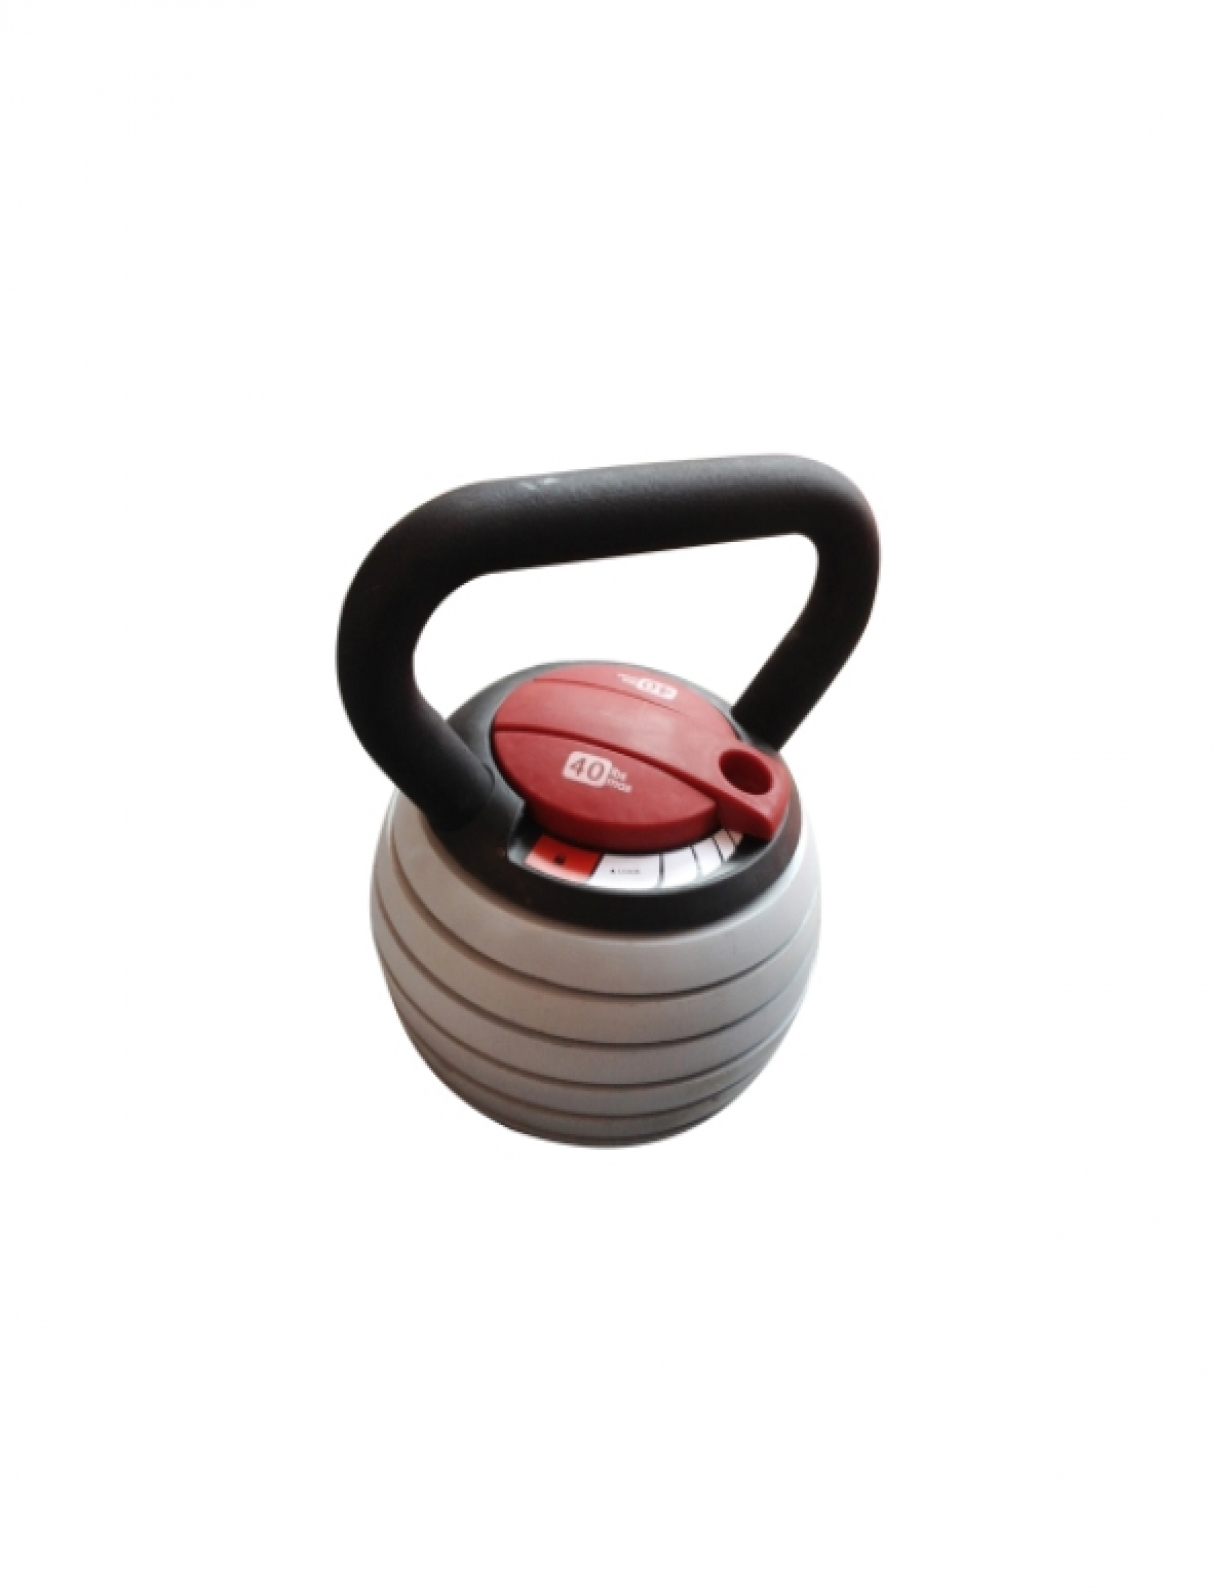 W 3386 ADJUSTABLE KETTLE BELL